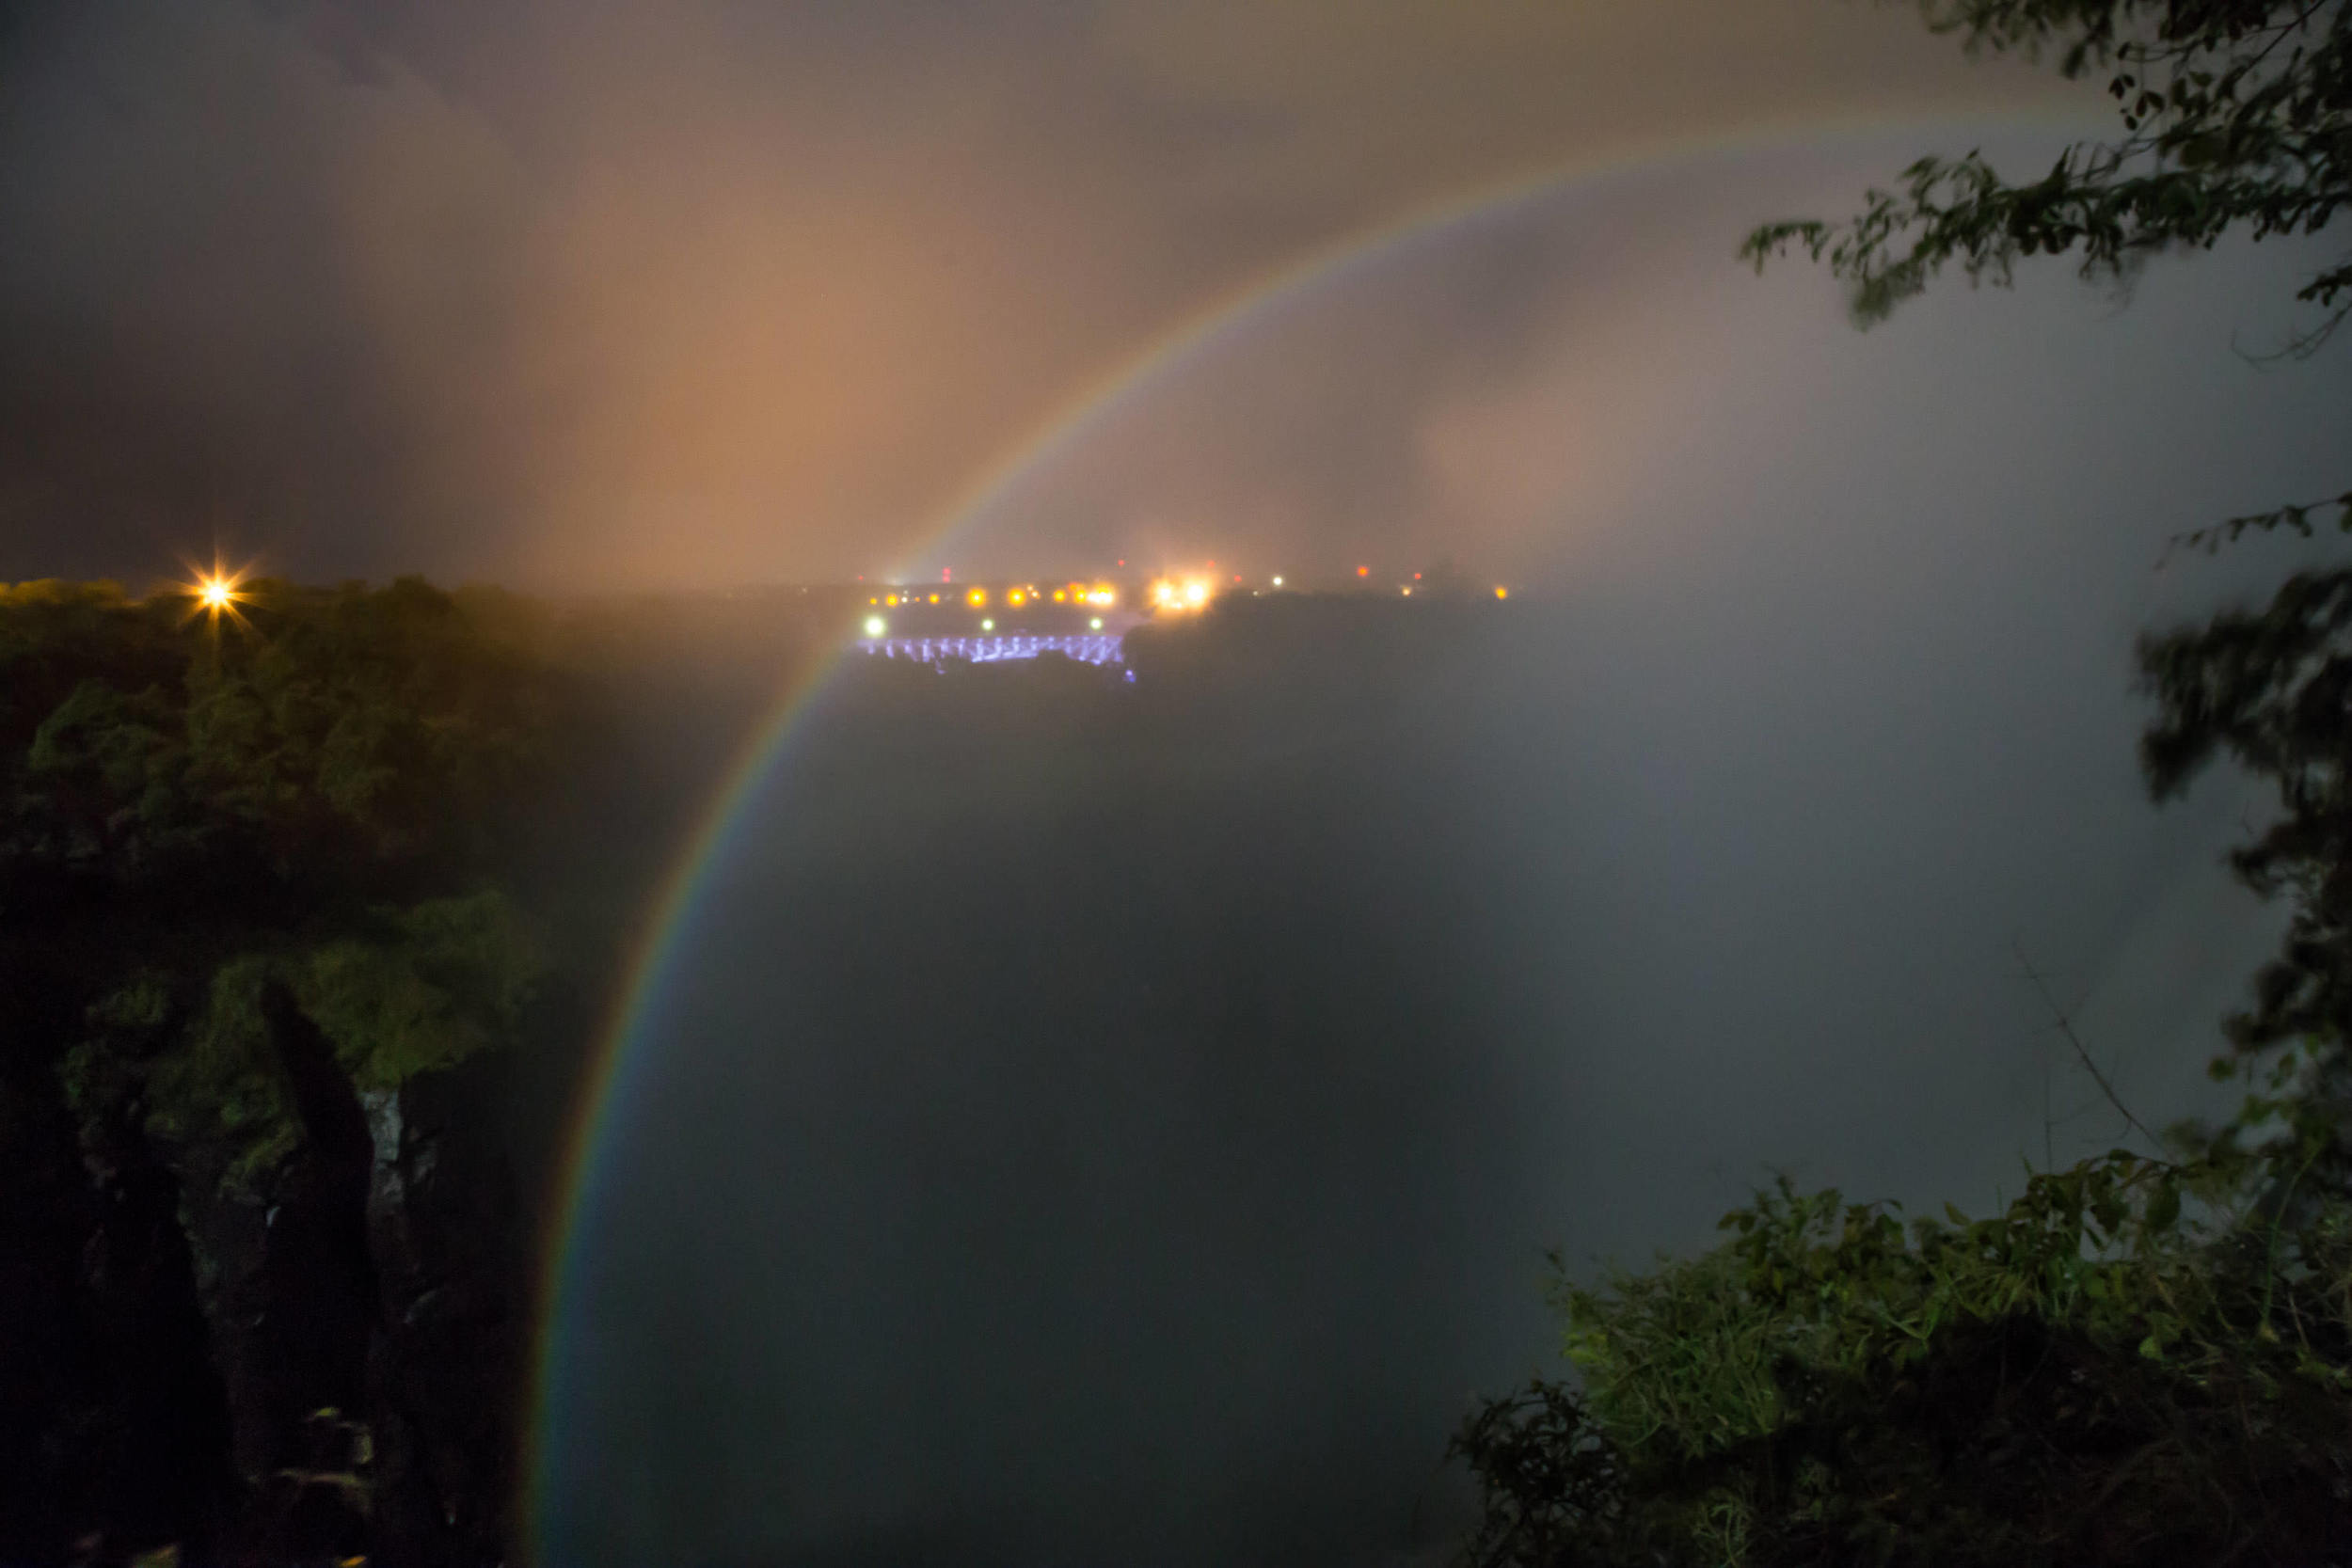 Once a month when the moon is full, you can see arainbow illuminate above the Falls.